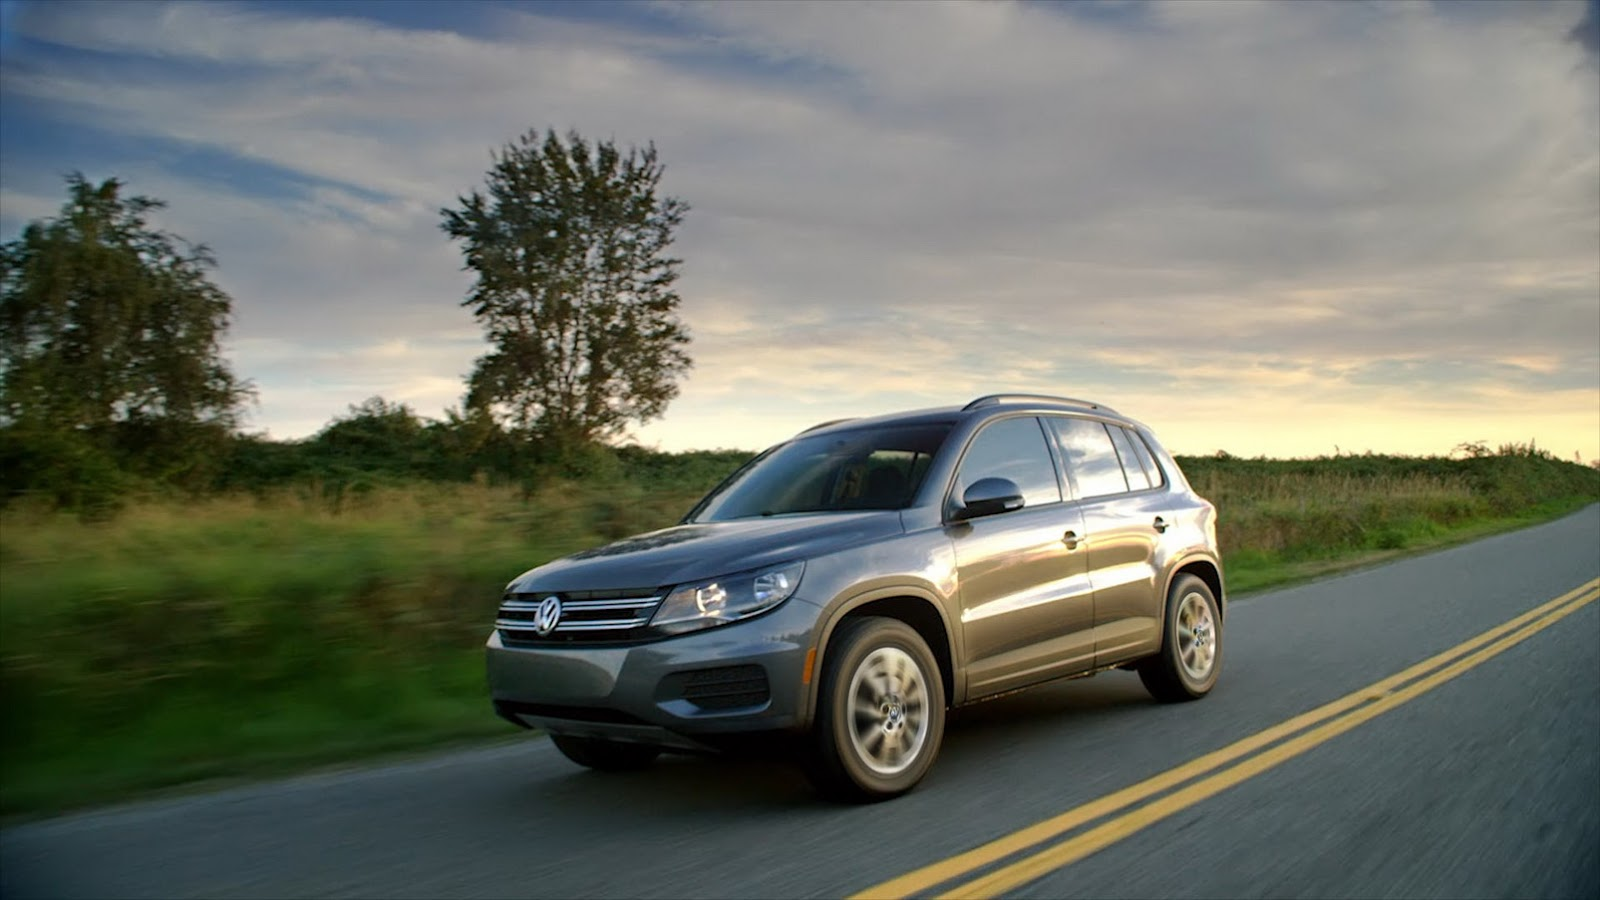 Old Volkswagen Tiguan Lives On In The U S As An Affordable Suv